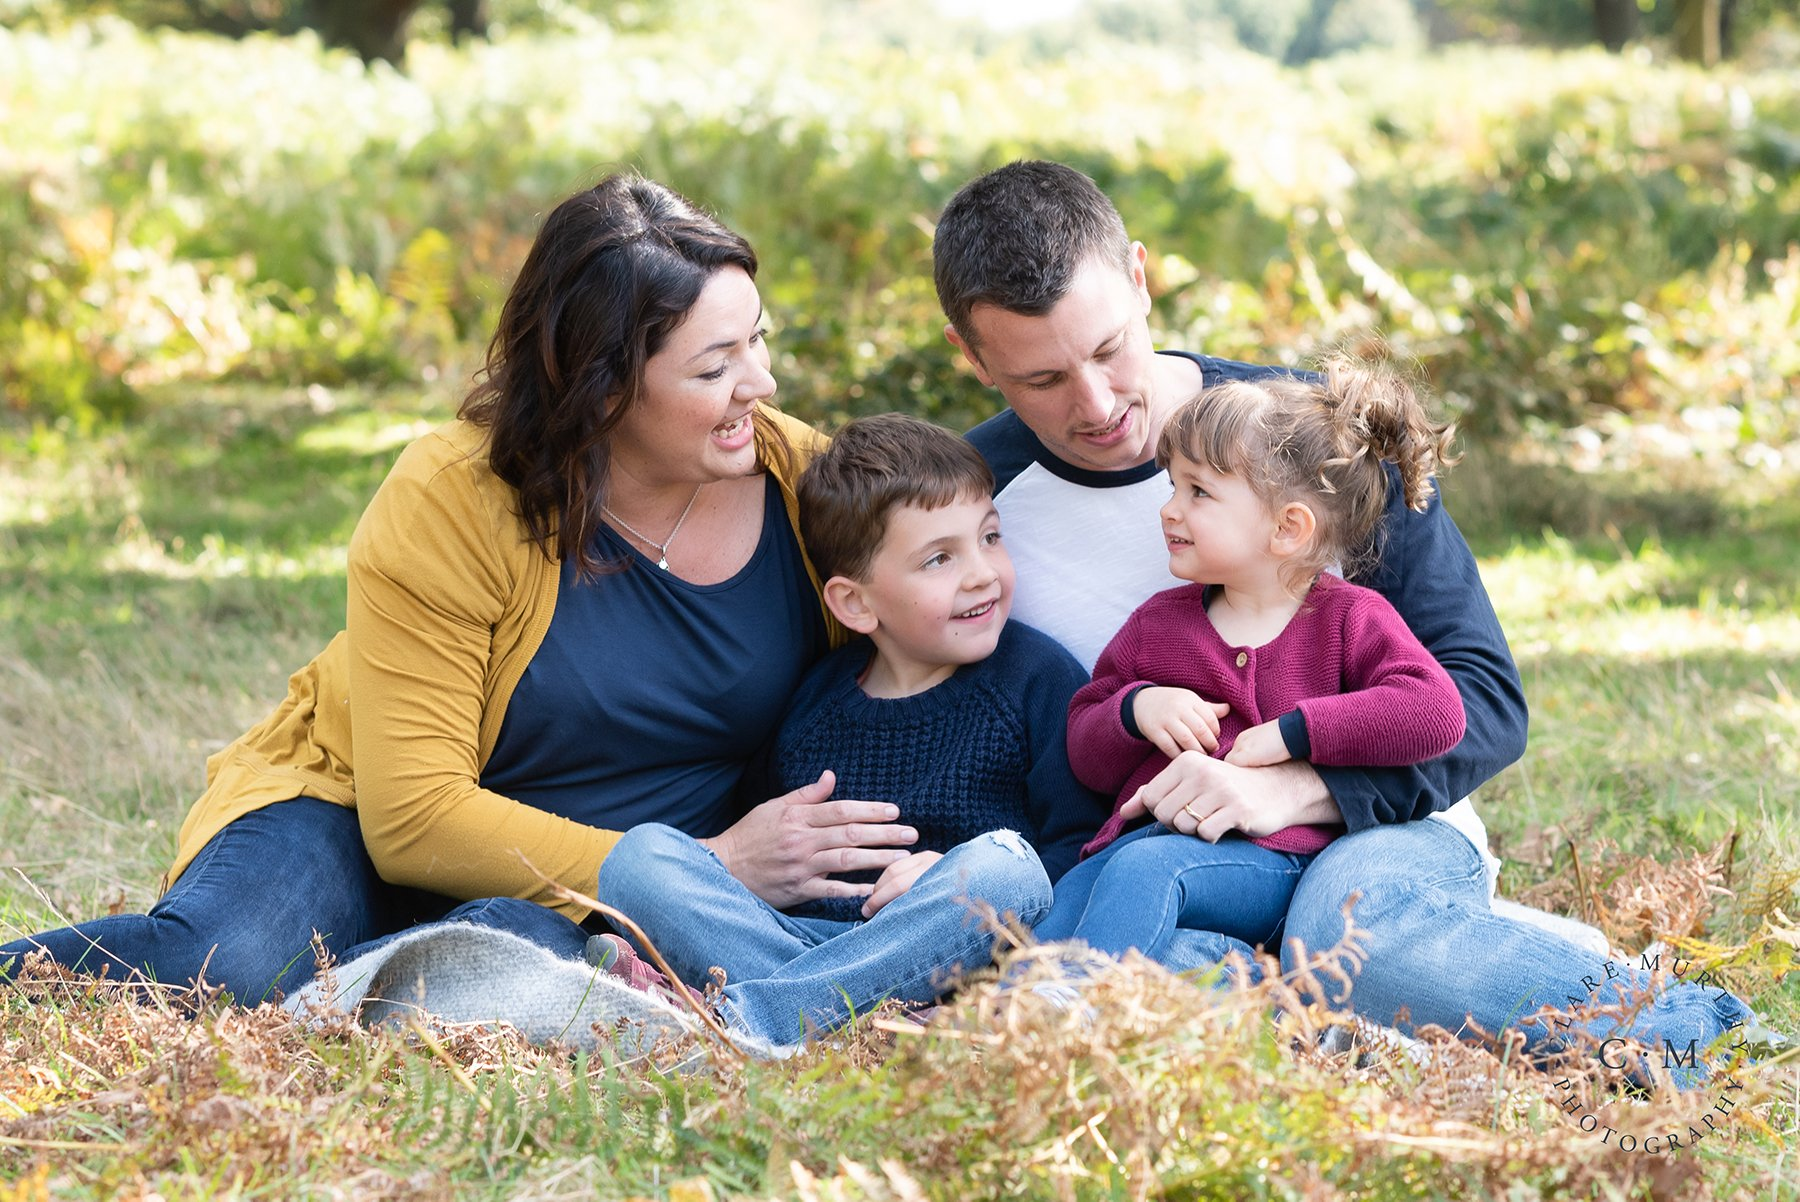 Worcester Park Family Photography | Clare Murthy Photography